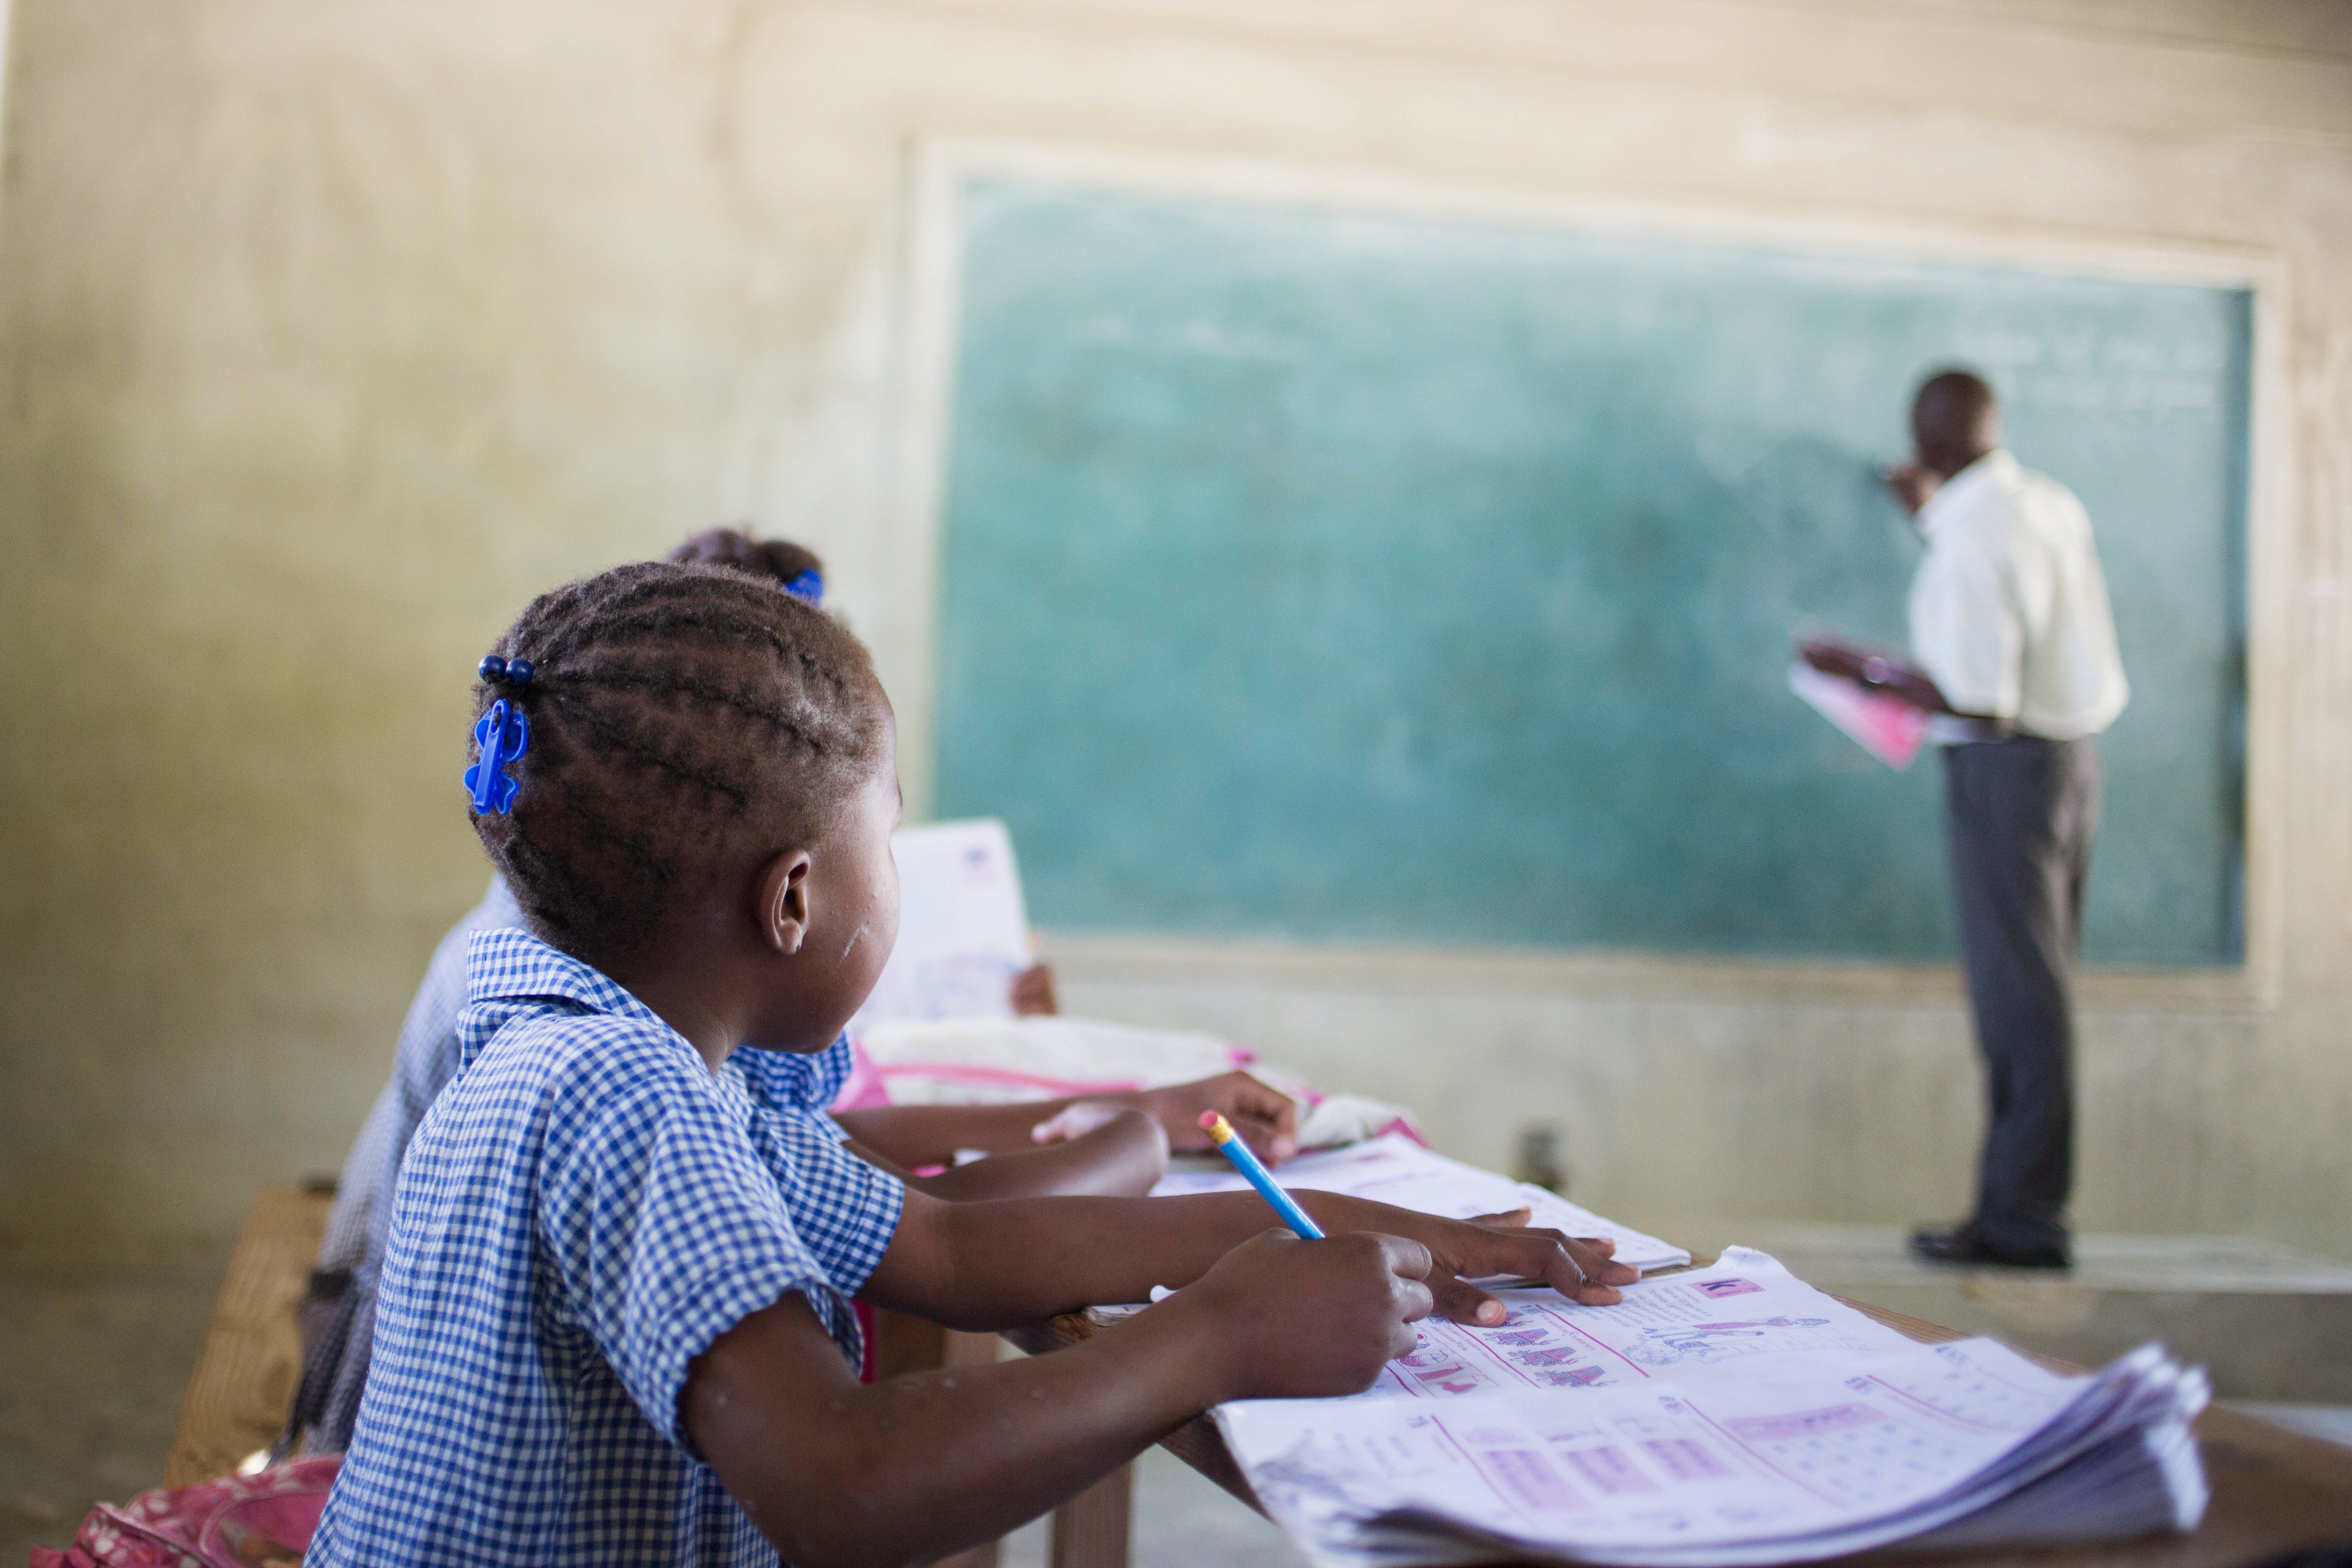 A student in Haiti looking at at the chalkboard.